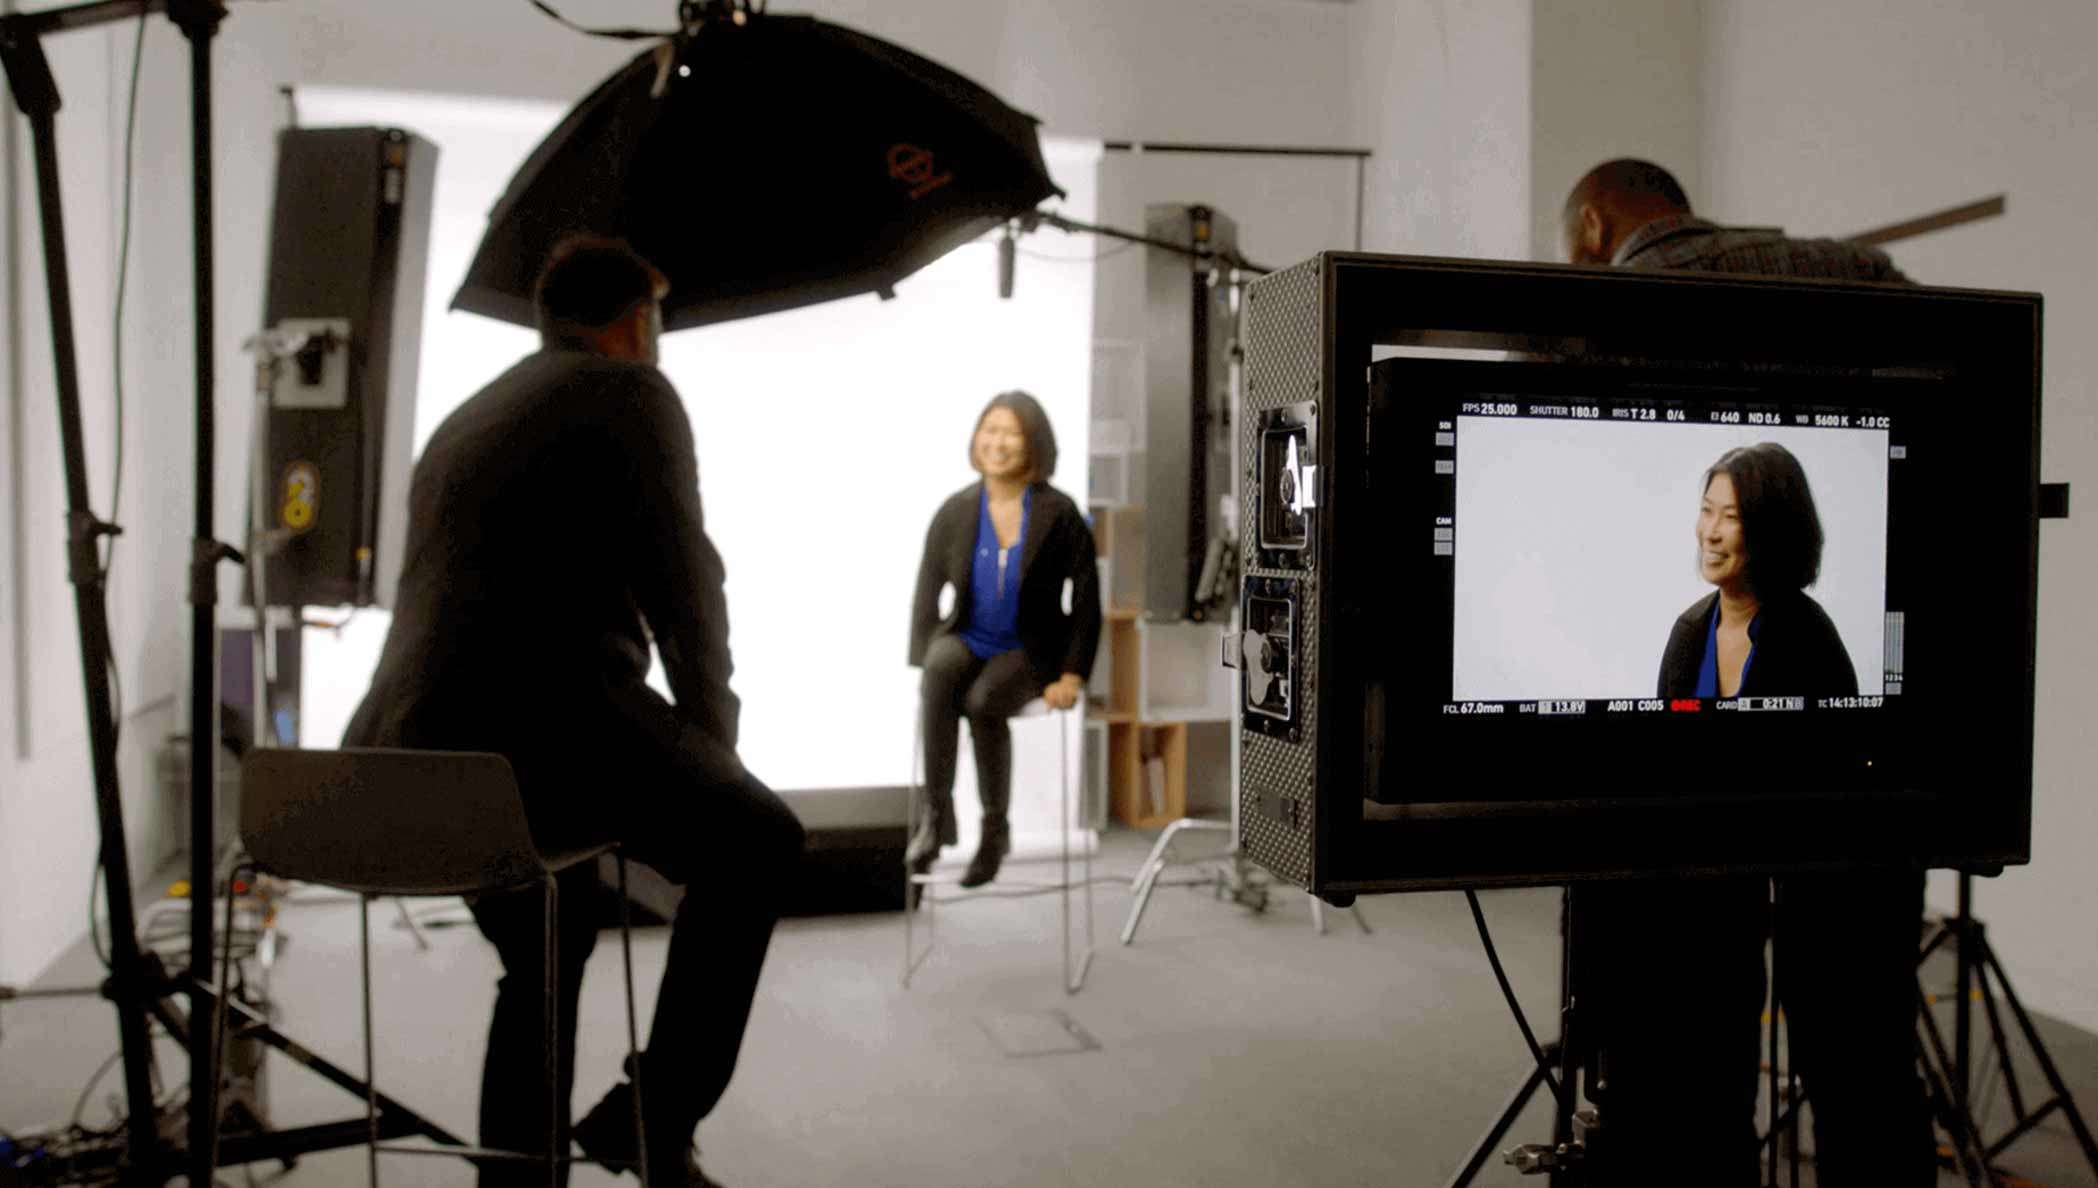 Still image of Unilever executive being interviewed by DocuSign about CLM in this video.